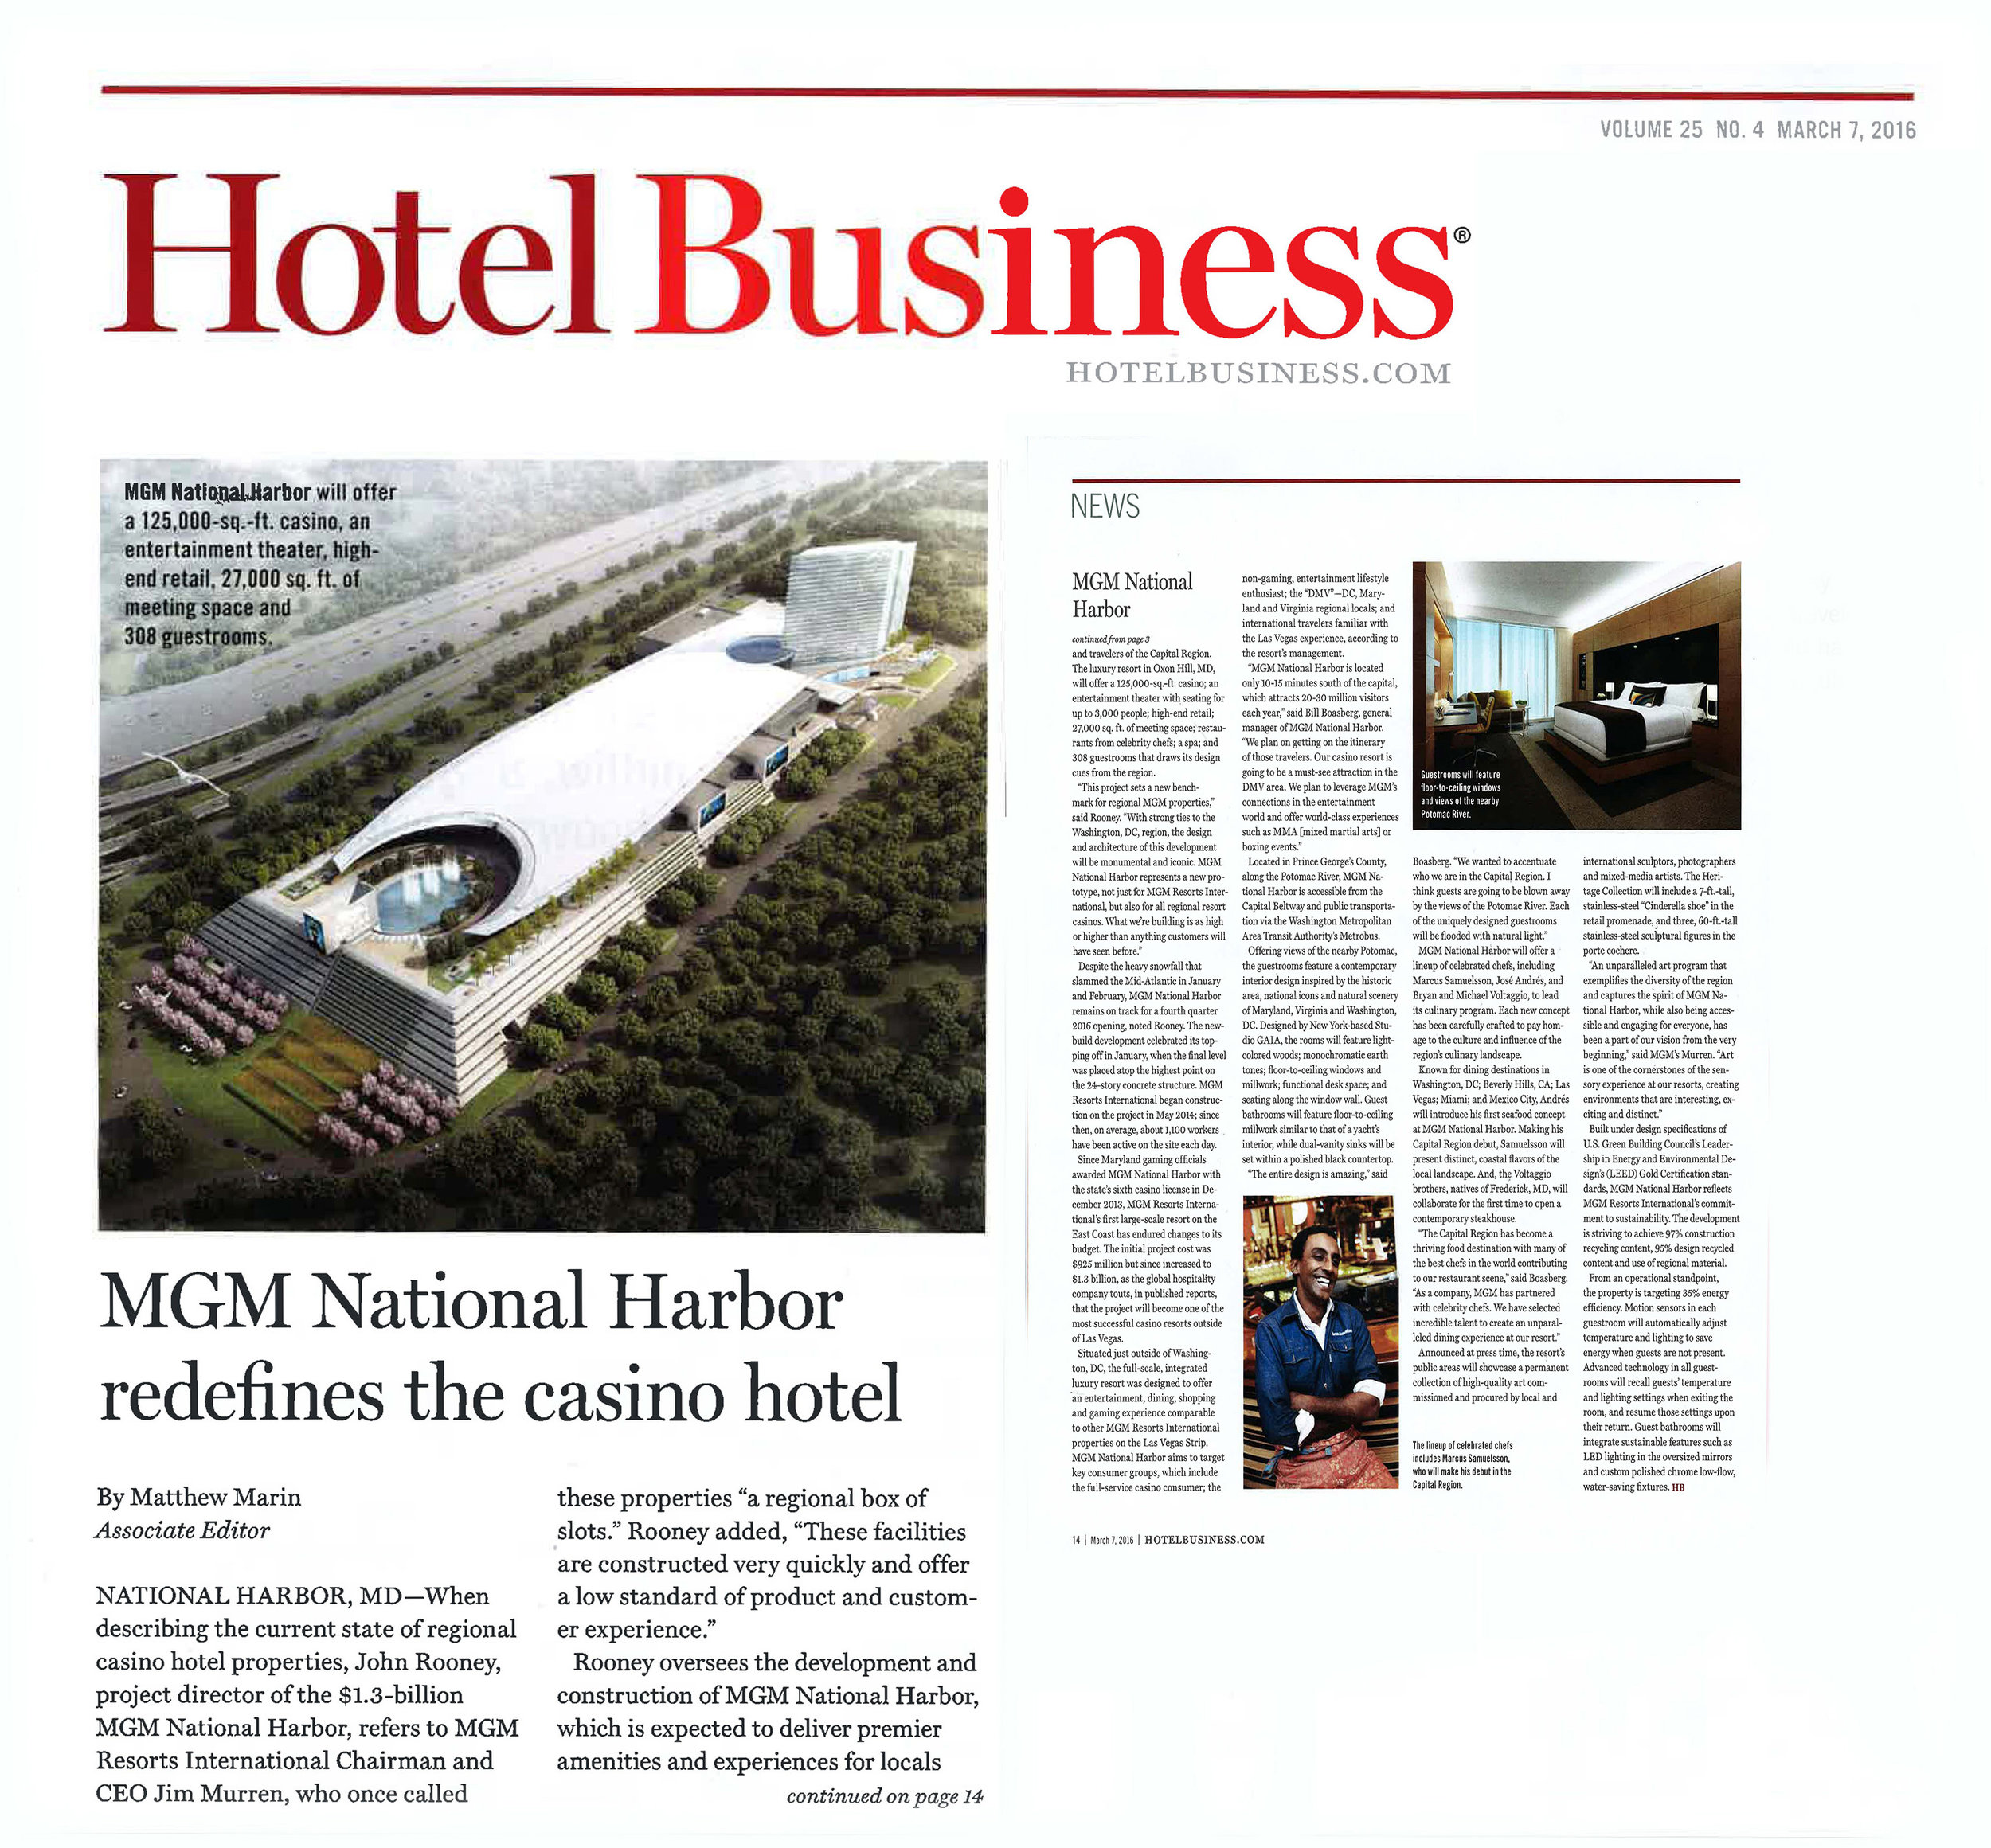 MGM National Harbor announced in Hotel Business - Credit: Hotel Business, March 2016.